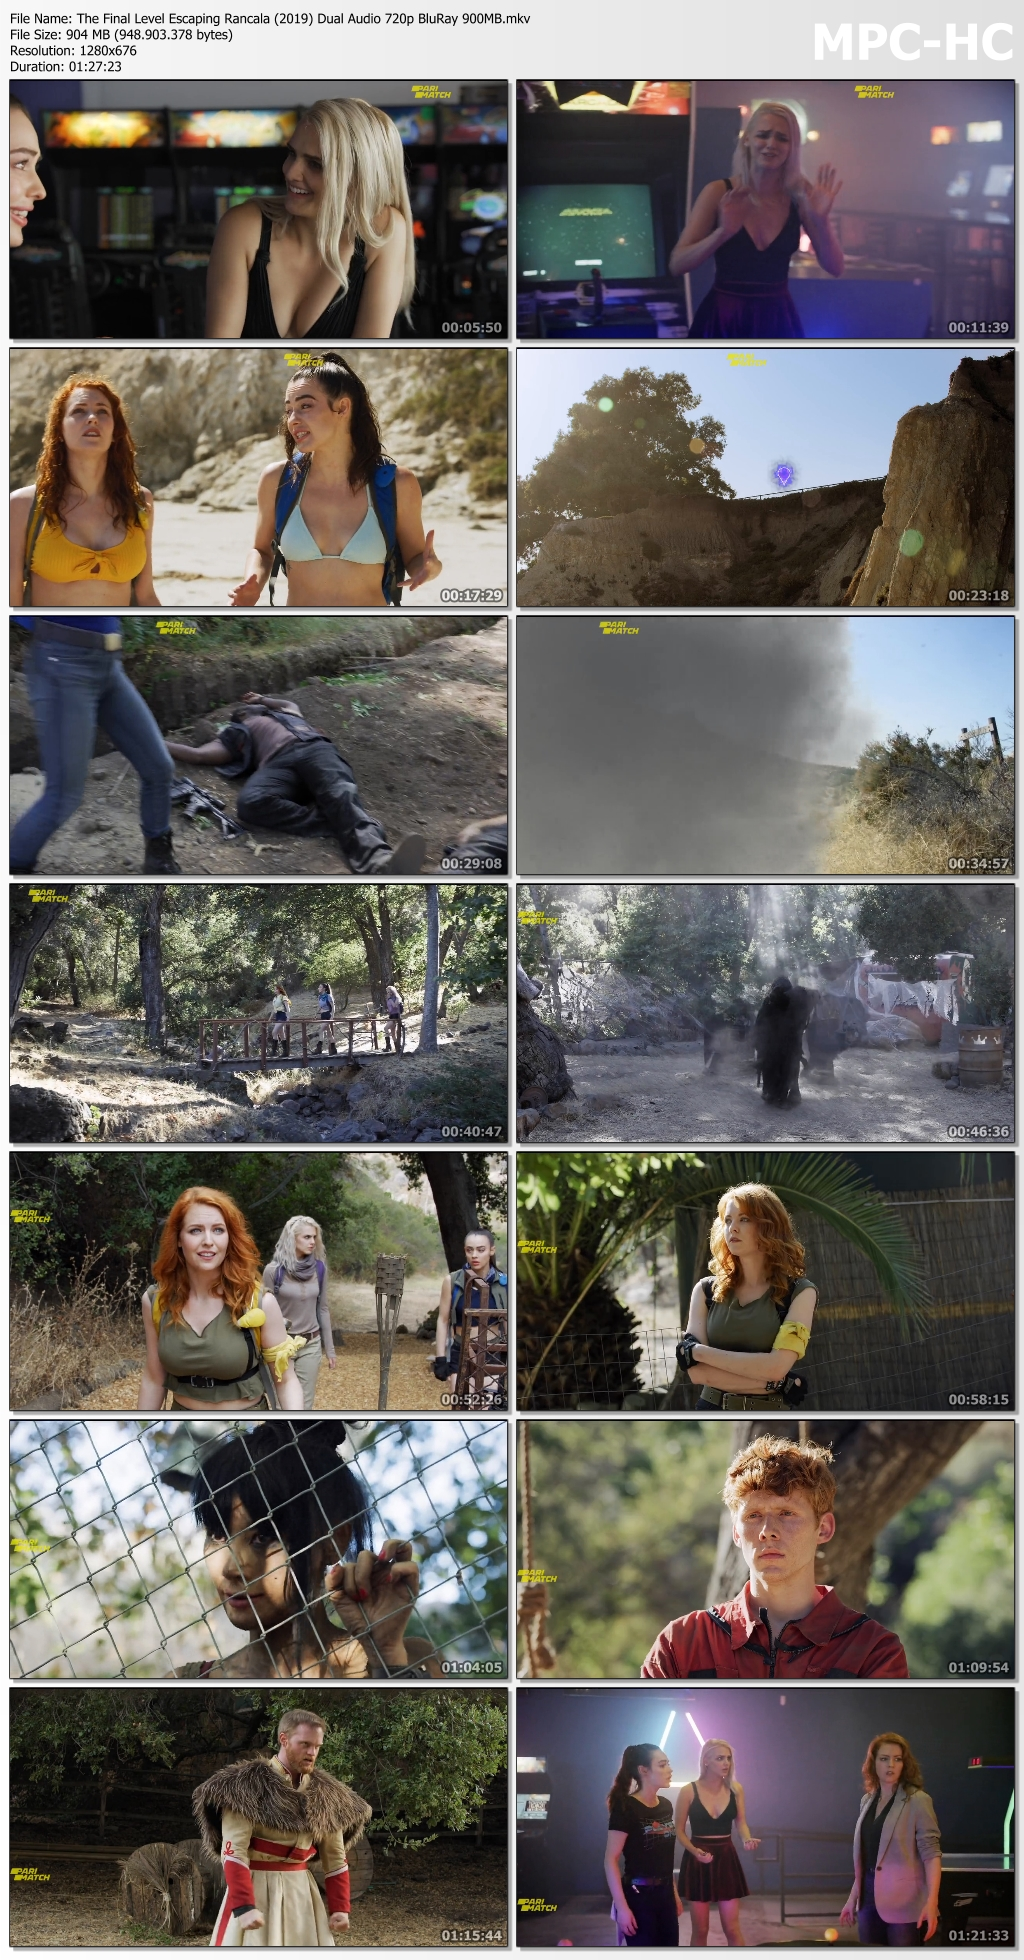 The-Final-Level-Escaping-Rancala-2019-Dual-Audio-720p-Blu-Ray-900-MB-mkv-thumbs